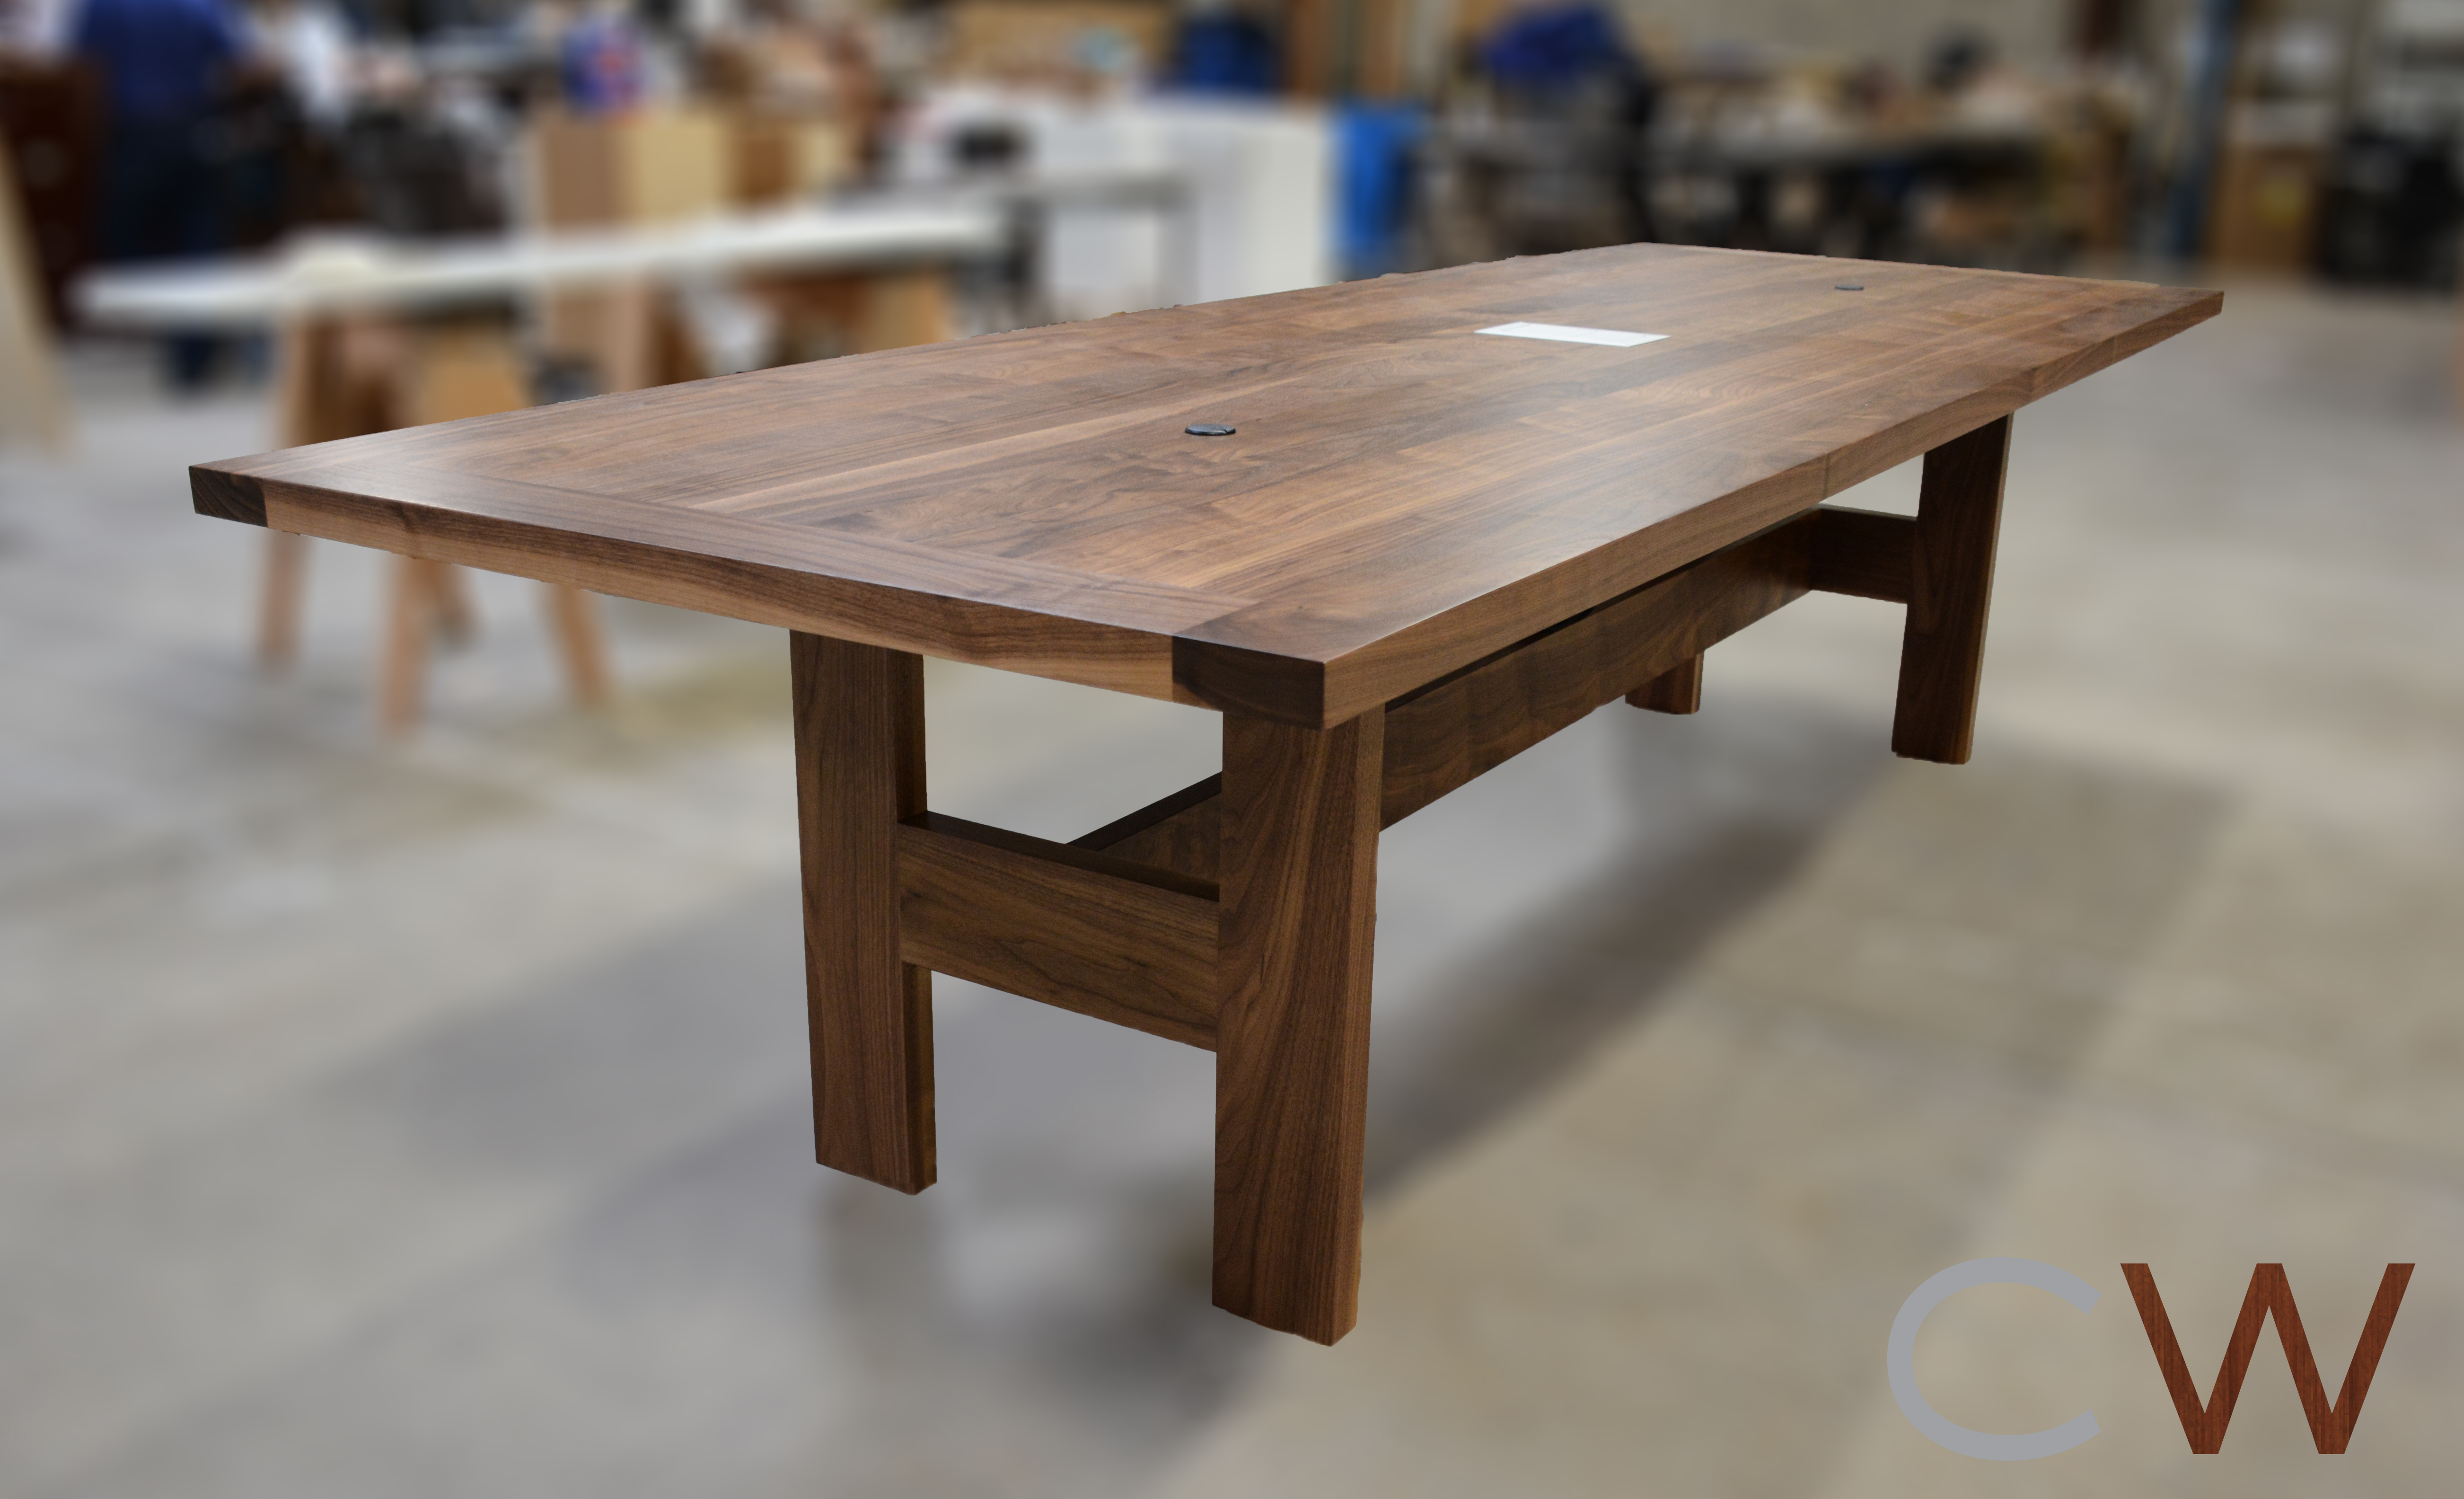 Creative Wood: Week In Review–August 7